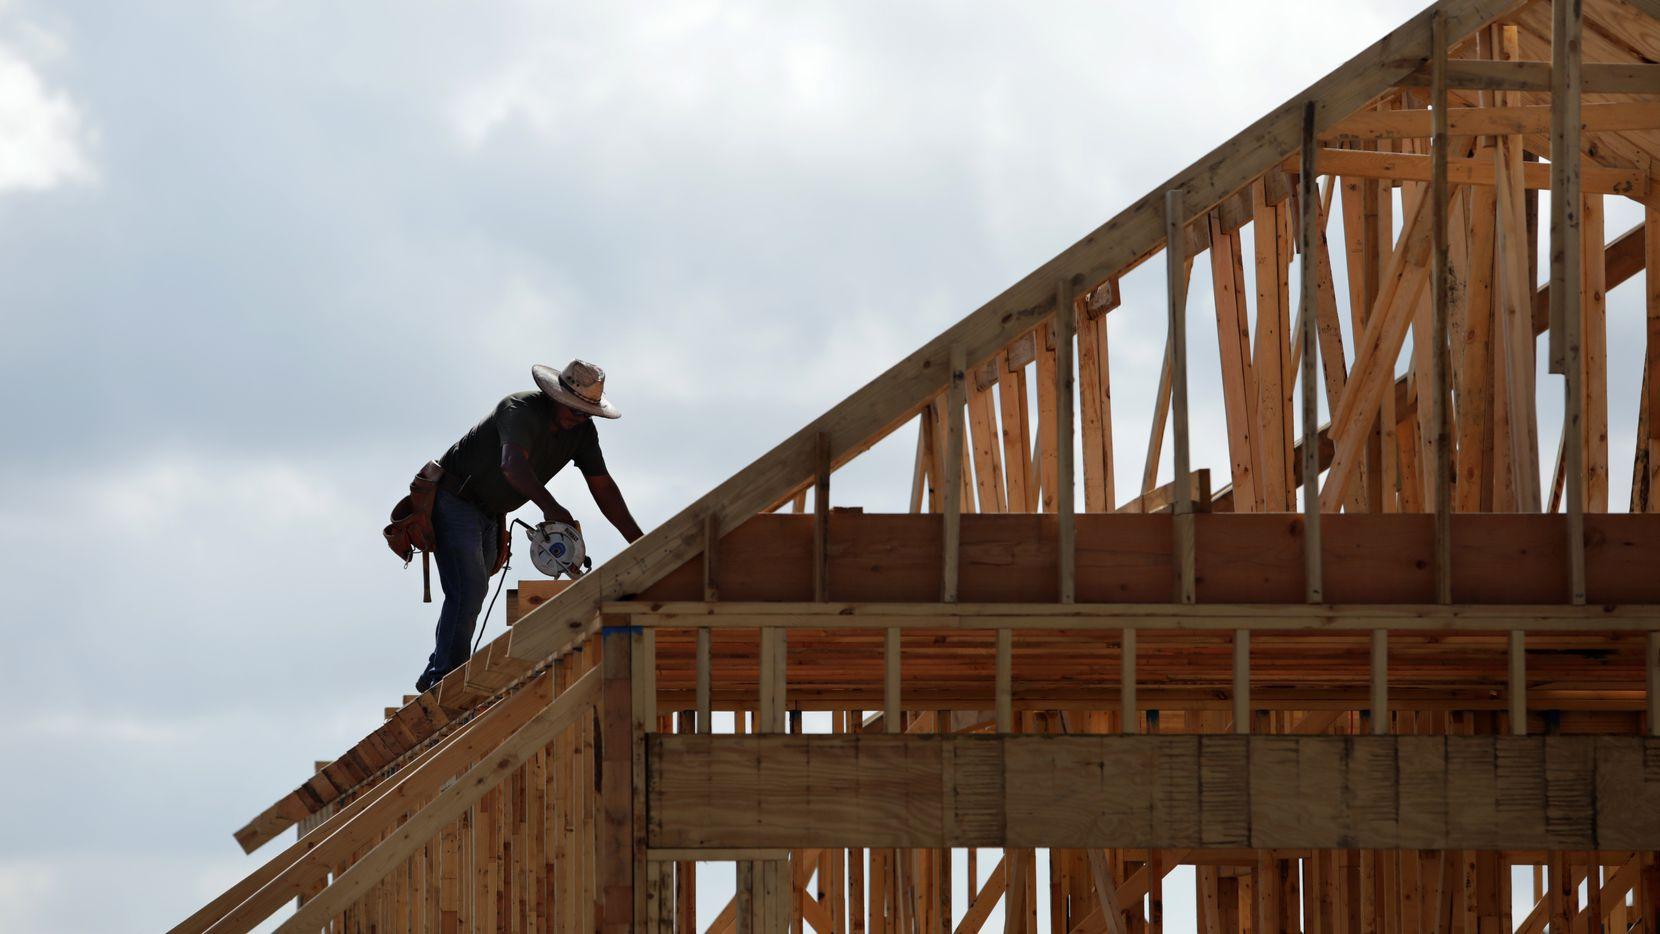 Invitation Homes plans to buy 7,500 new PulteGroup houses.